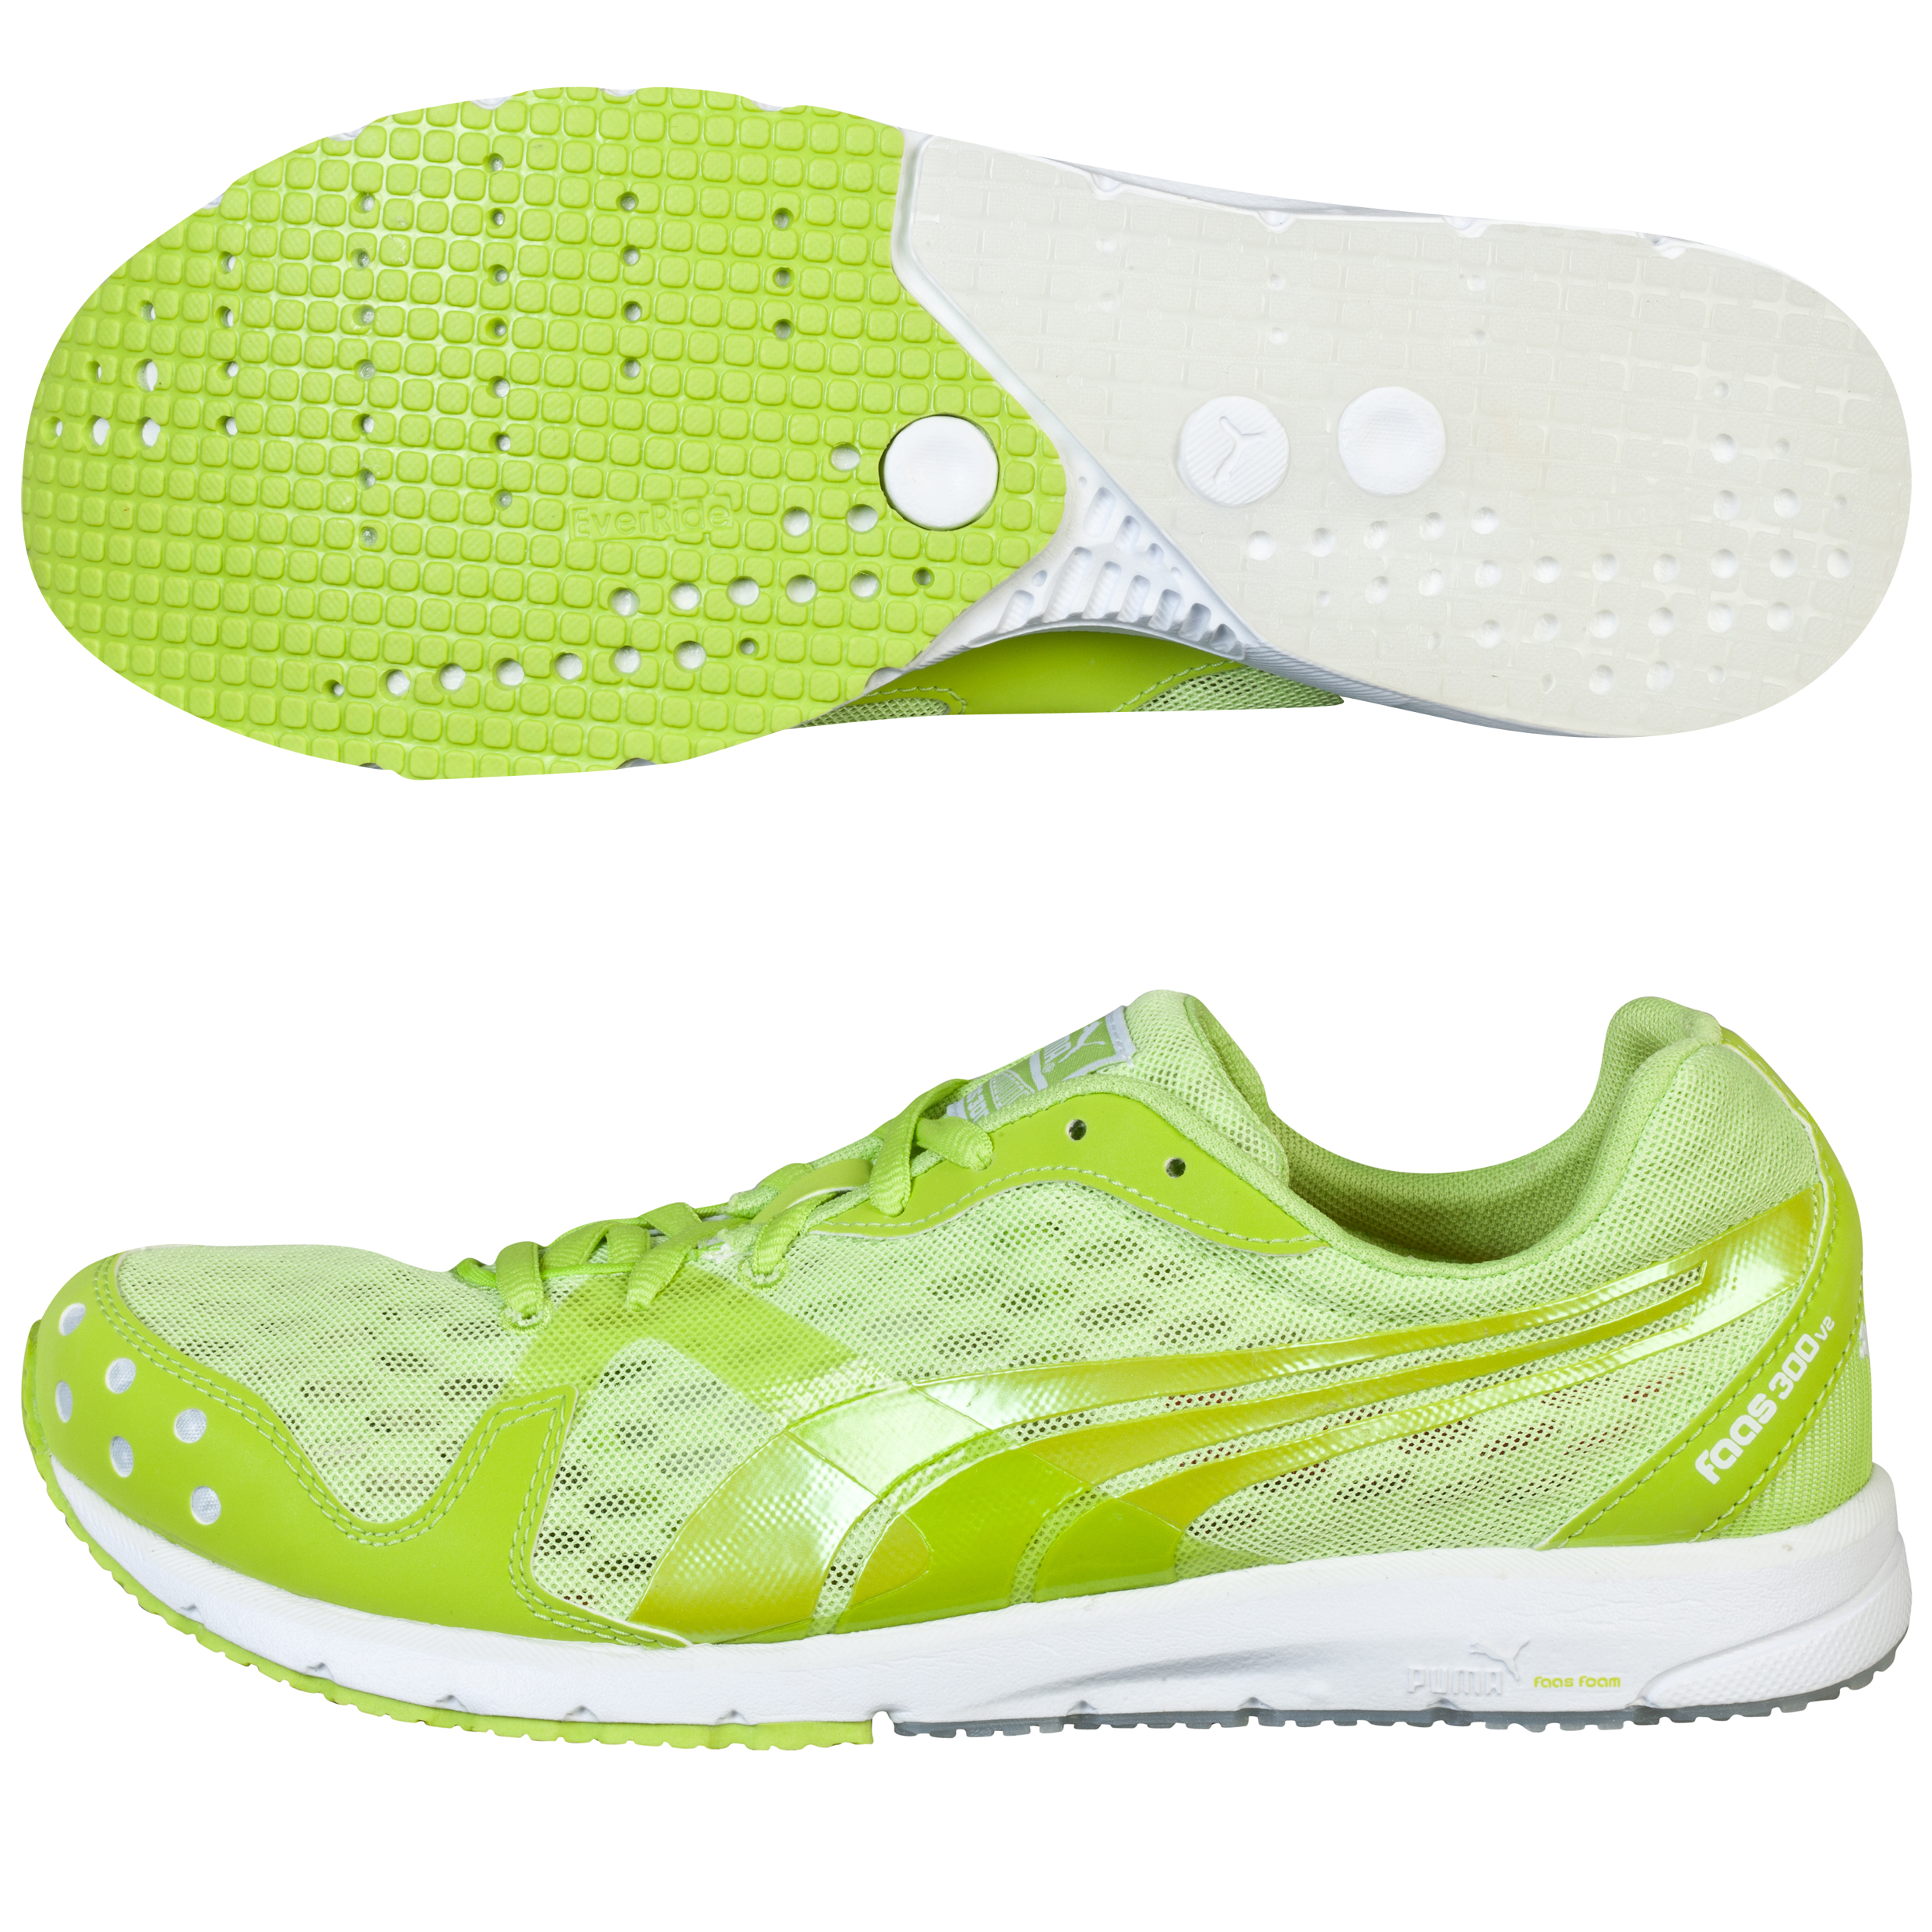 Running Puma Faas 300 v2 Glow Trainer - Lime Punch Lt Green